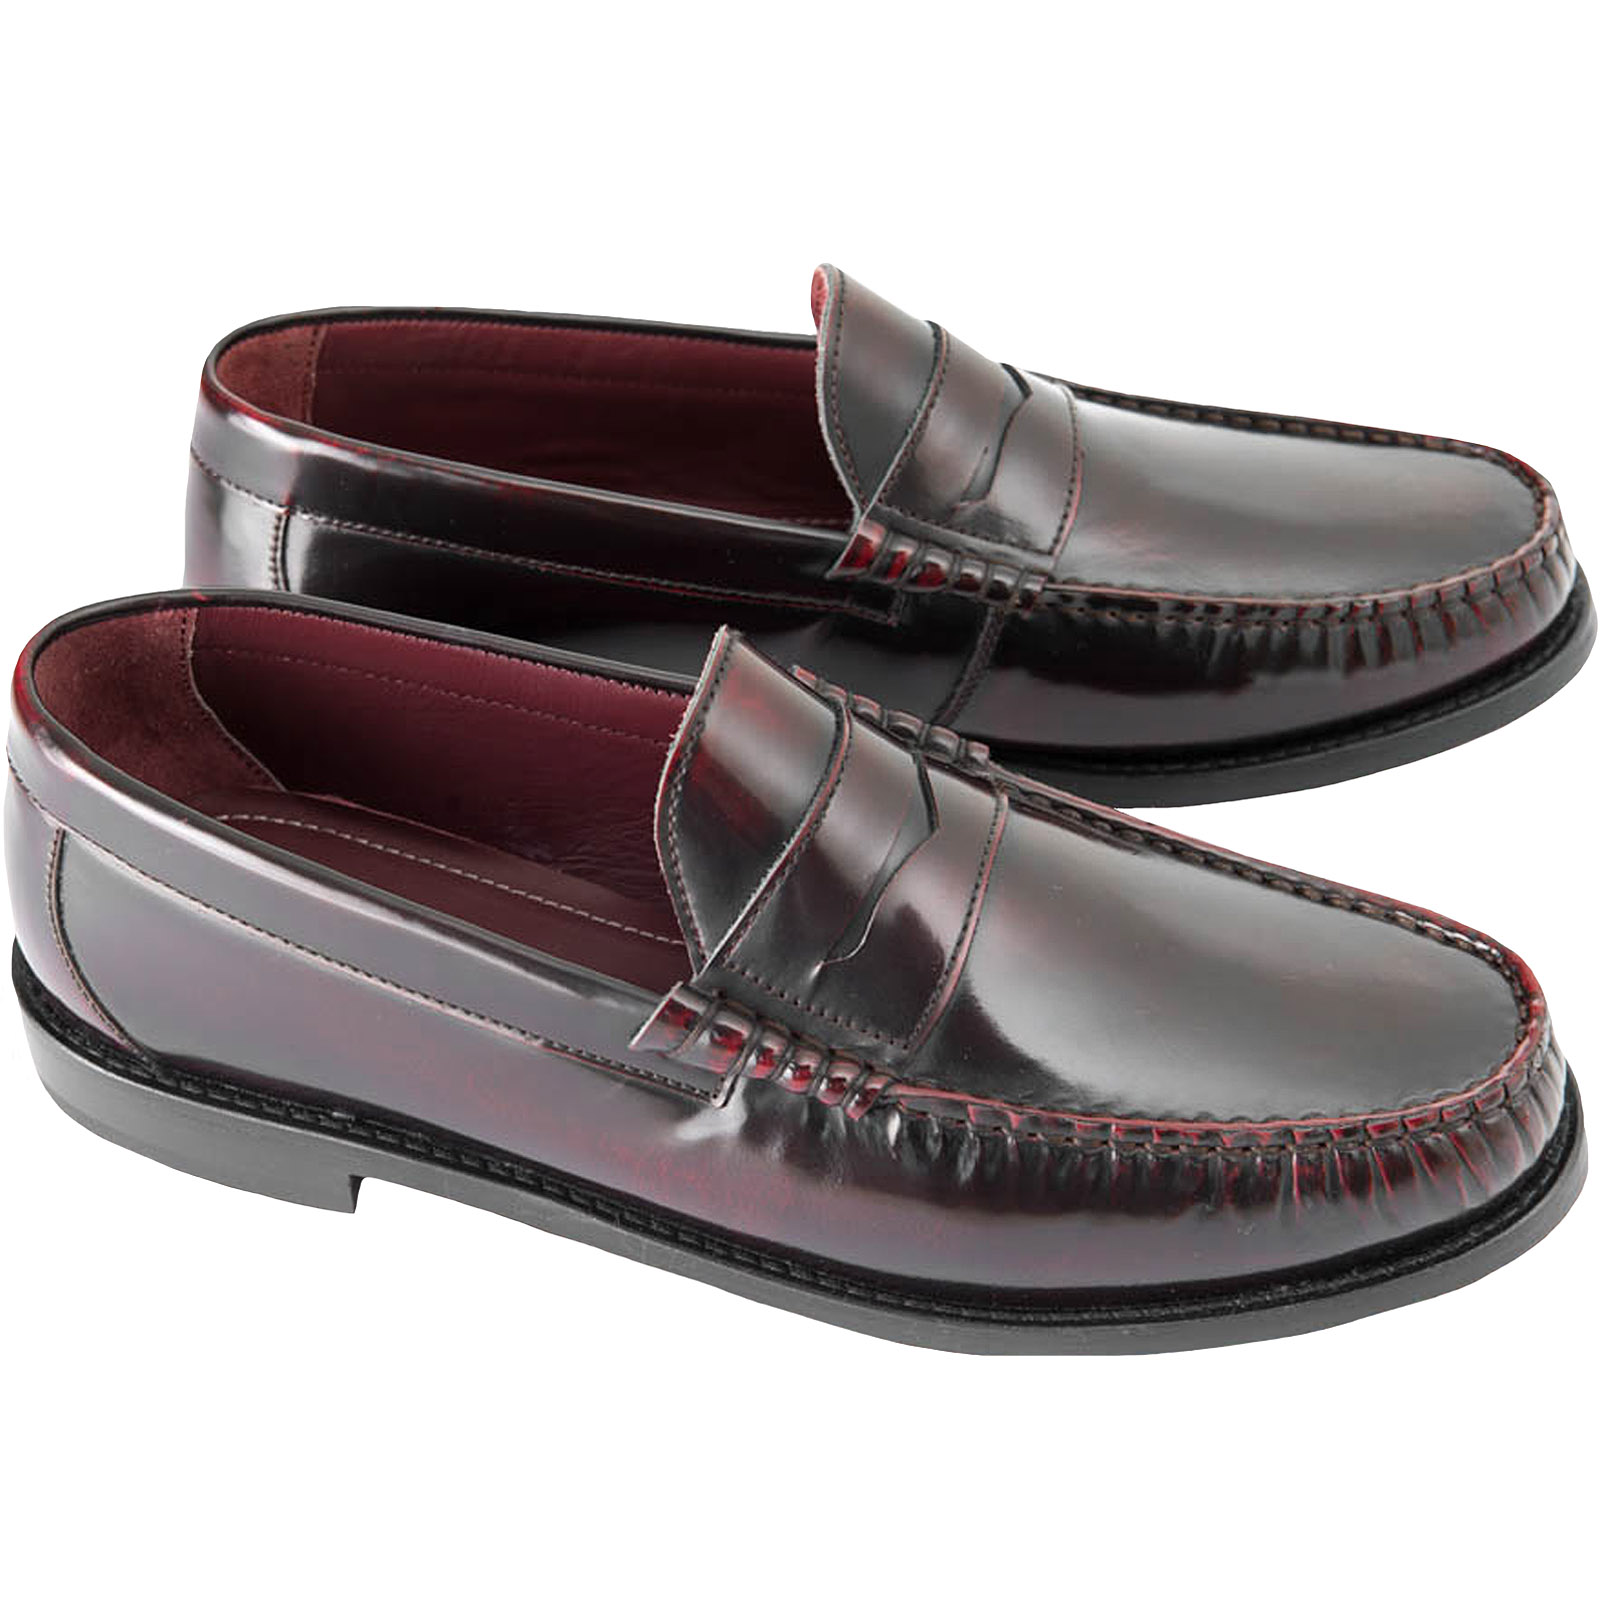 Ikon Mens Tide Casual Summer Leather Slip-On Deck Beach Shoes Moccasins